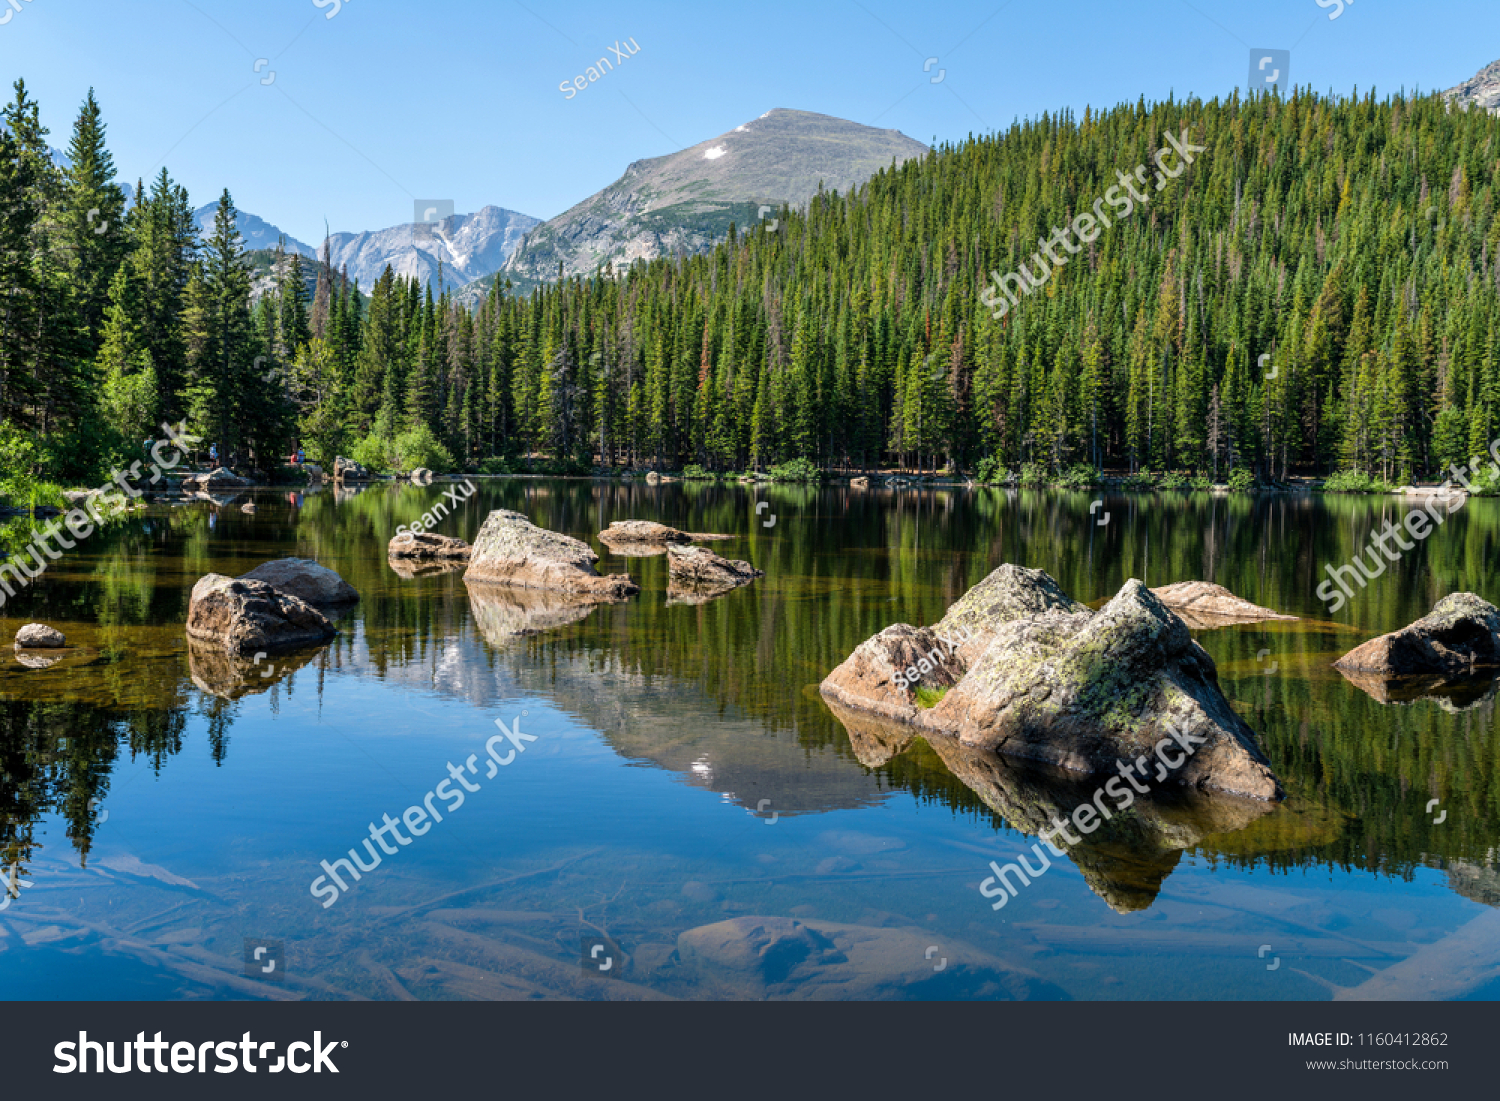 Bear Lake - A sunny summer morning view of a rocky section of Bear Lake, Rocky Mountain National Park, Colorado, USA. #1160412862